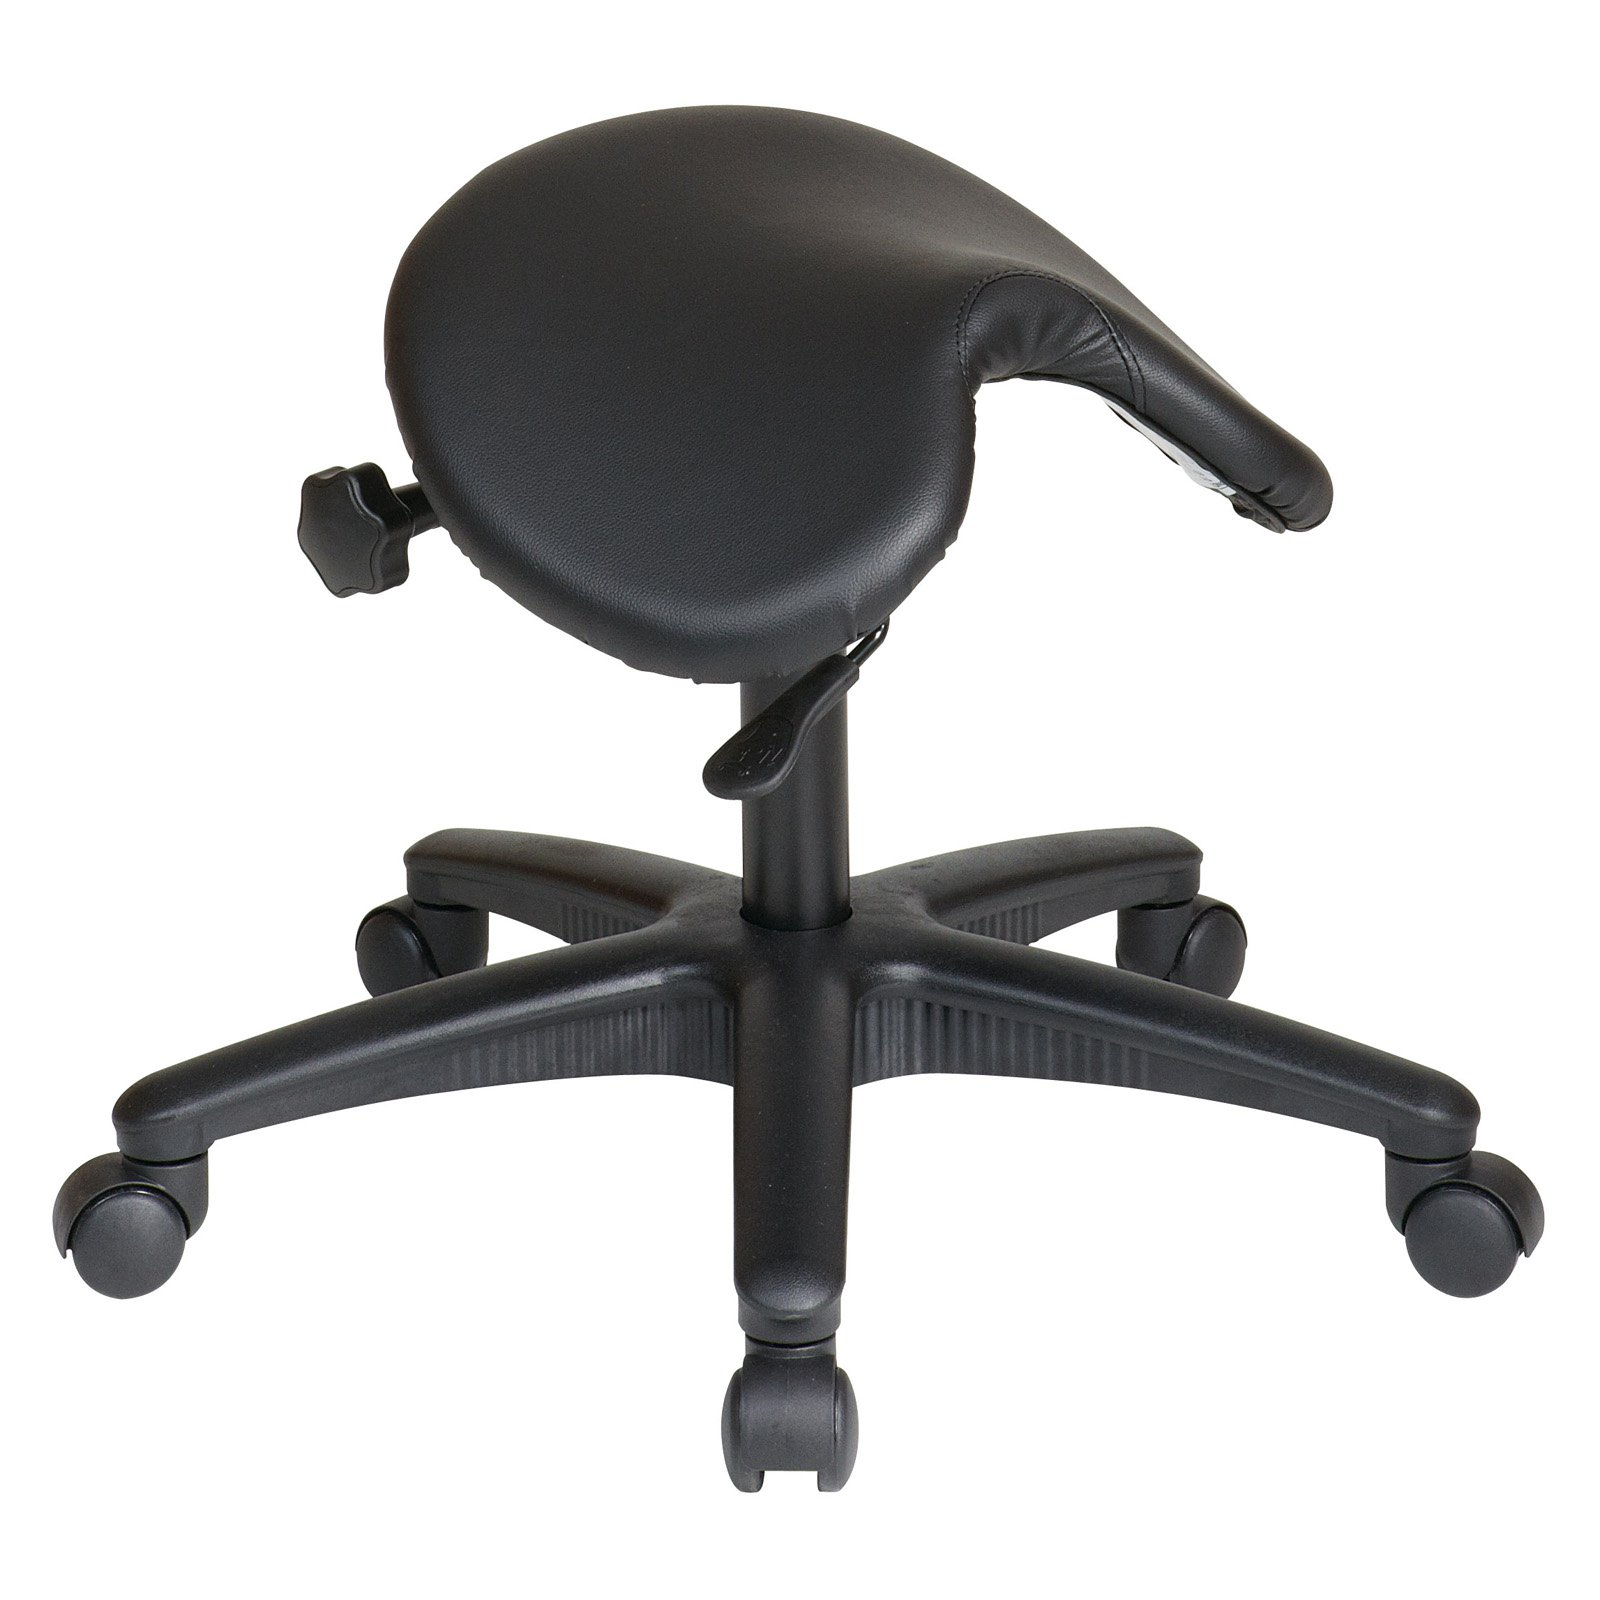 Pneumatic Drafting Stool with Saddle Seat and Seat Angle Adjustment